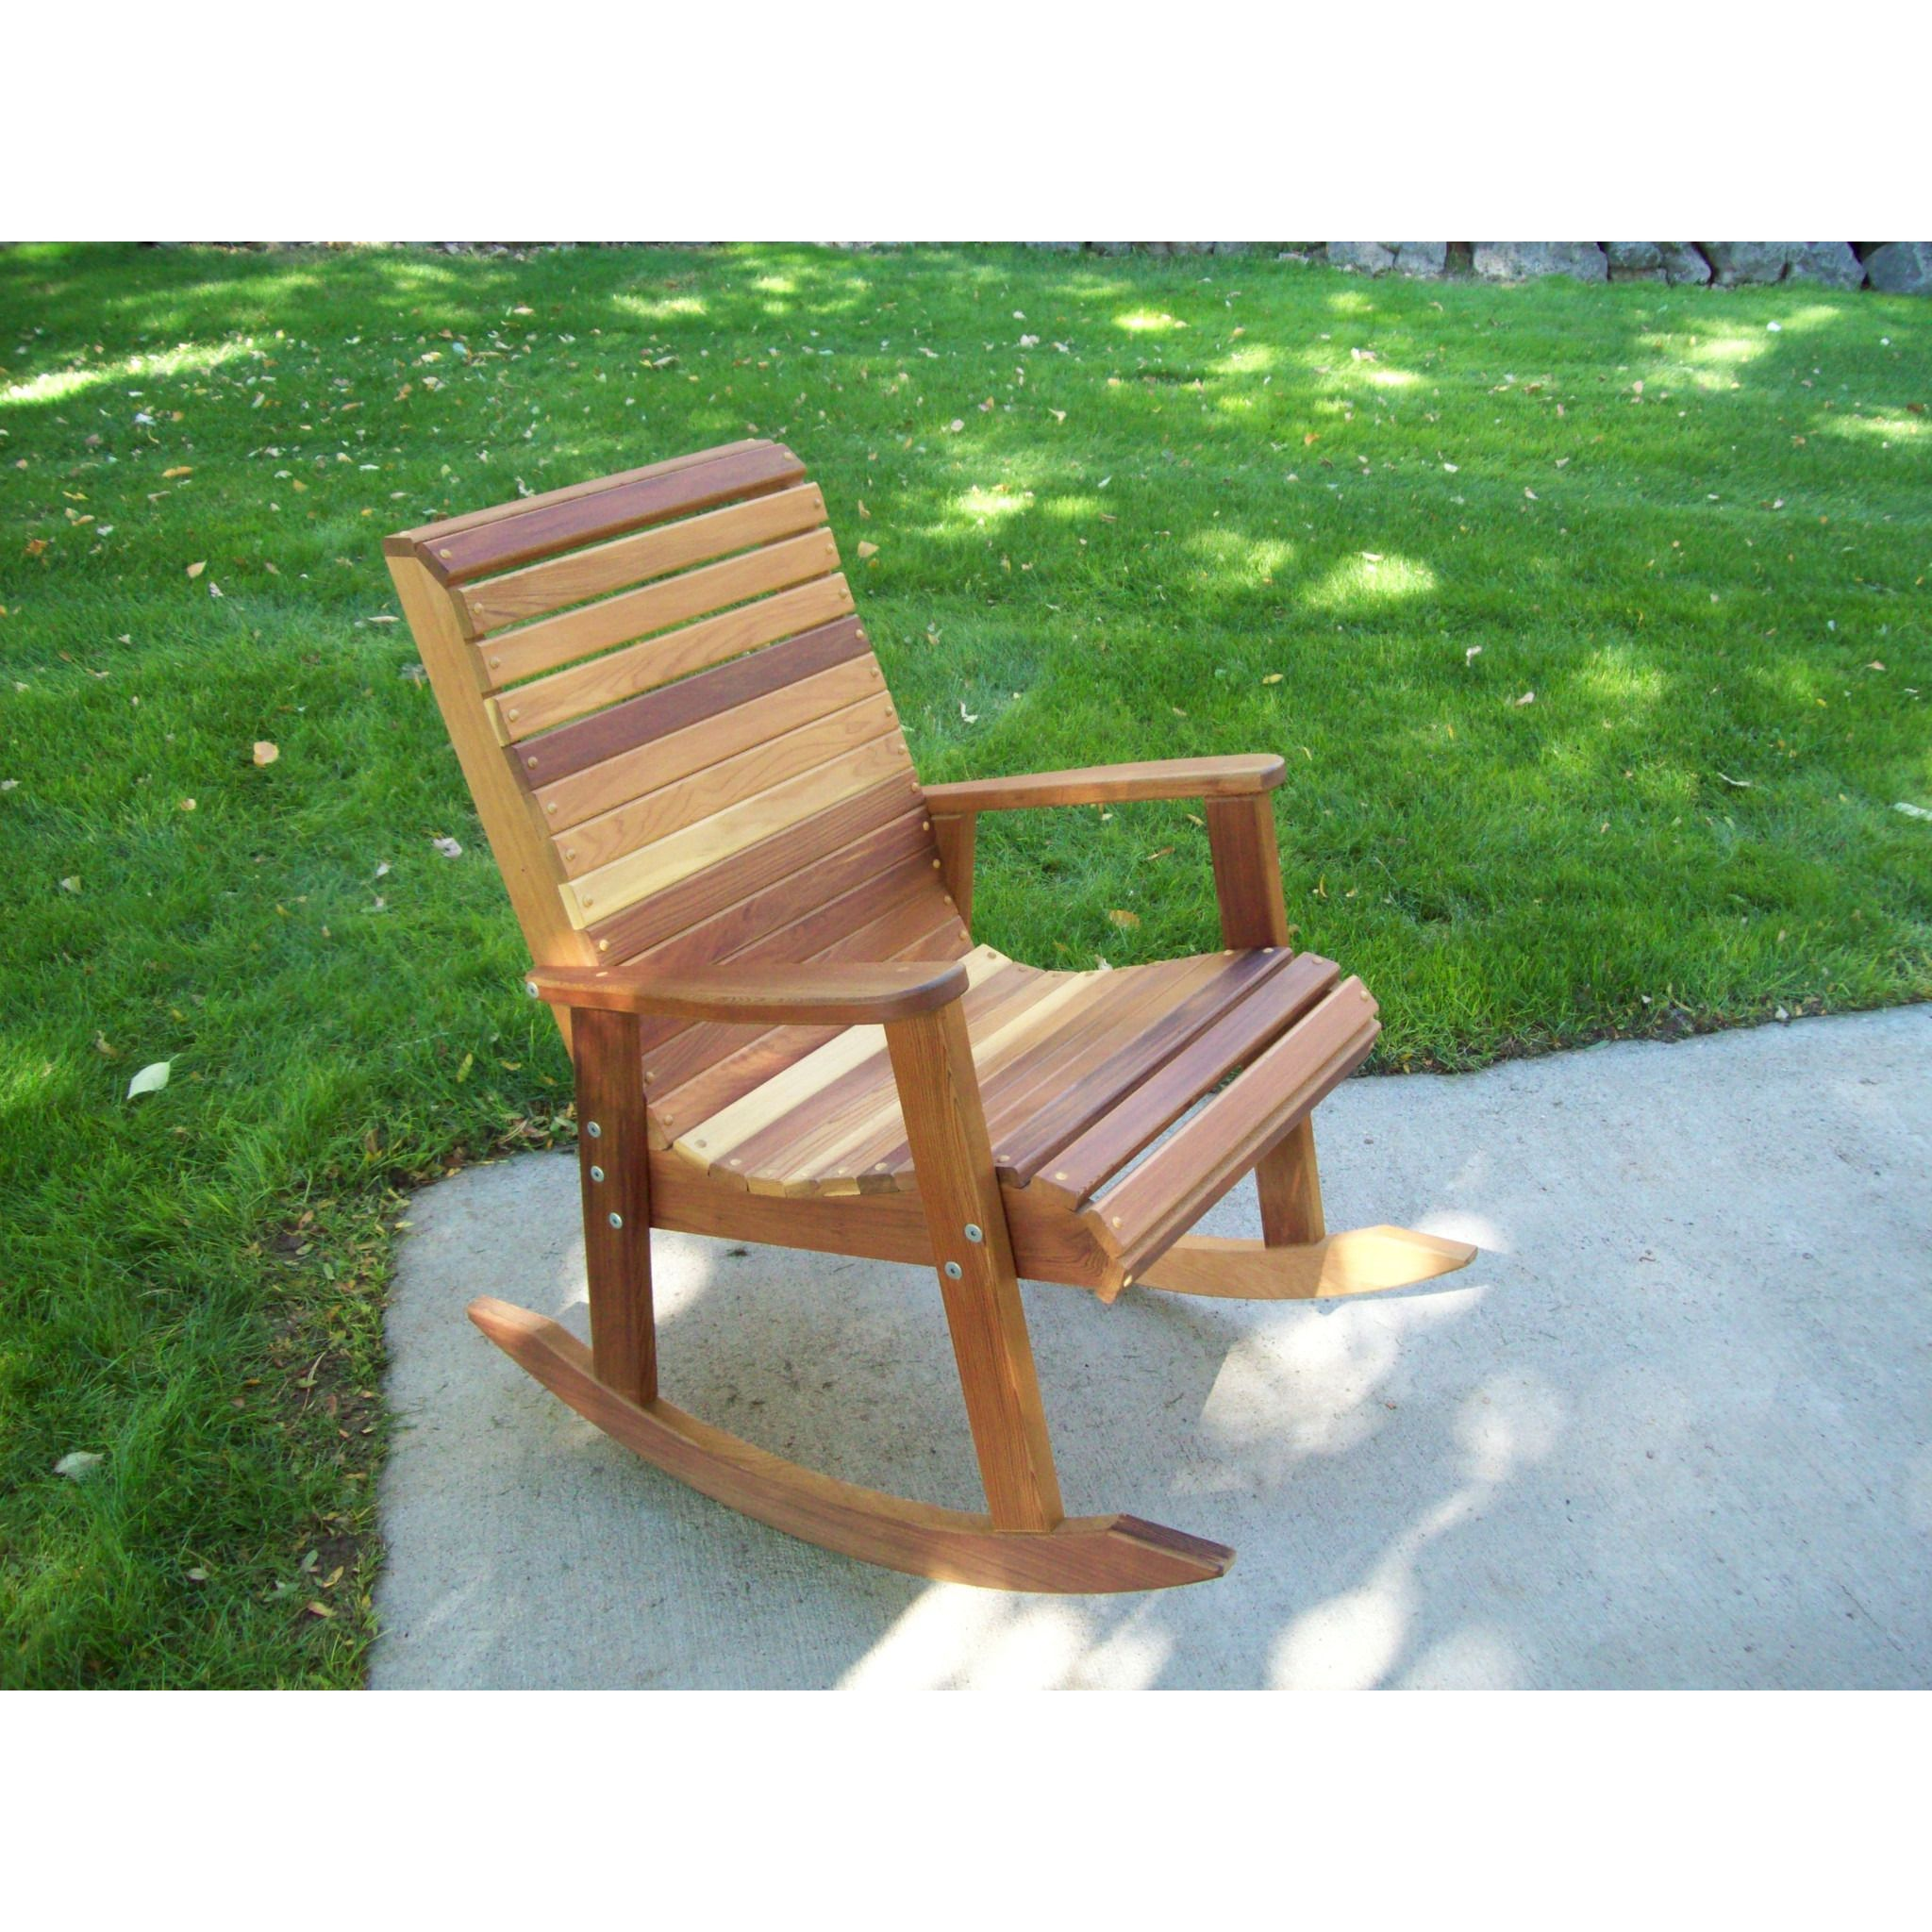 Wood Country T L Red Cedar Rocking Chair Rocking Chair Plans